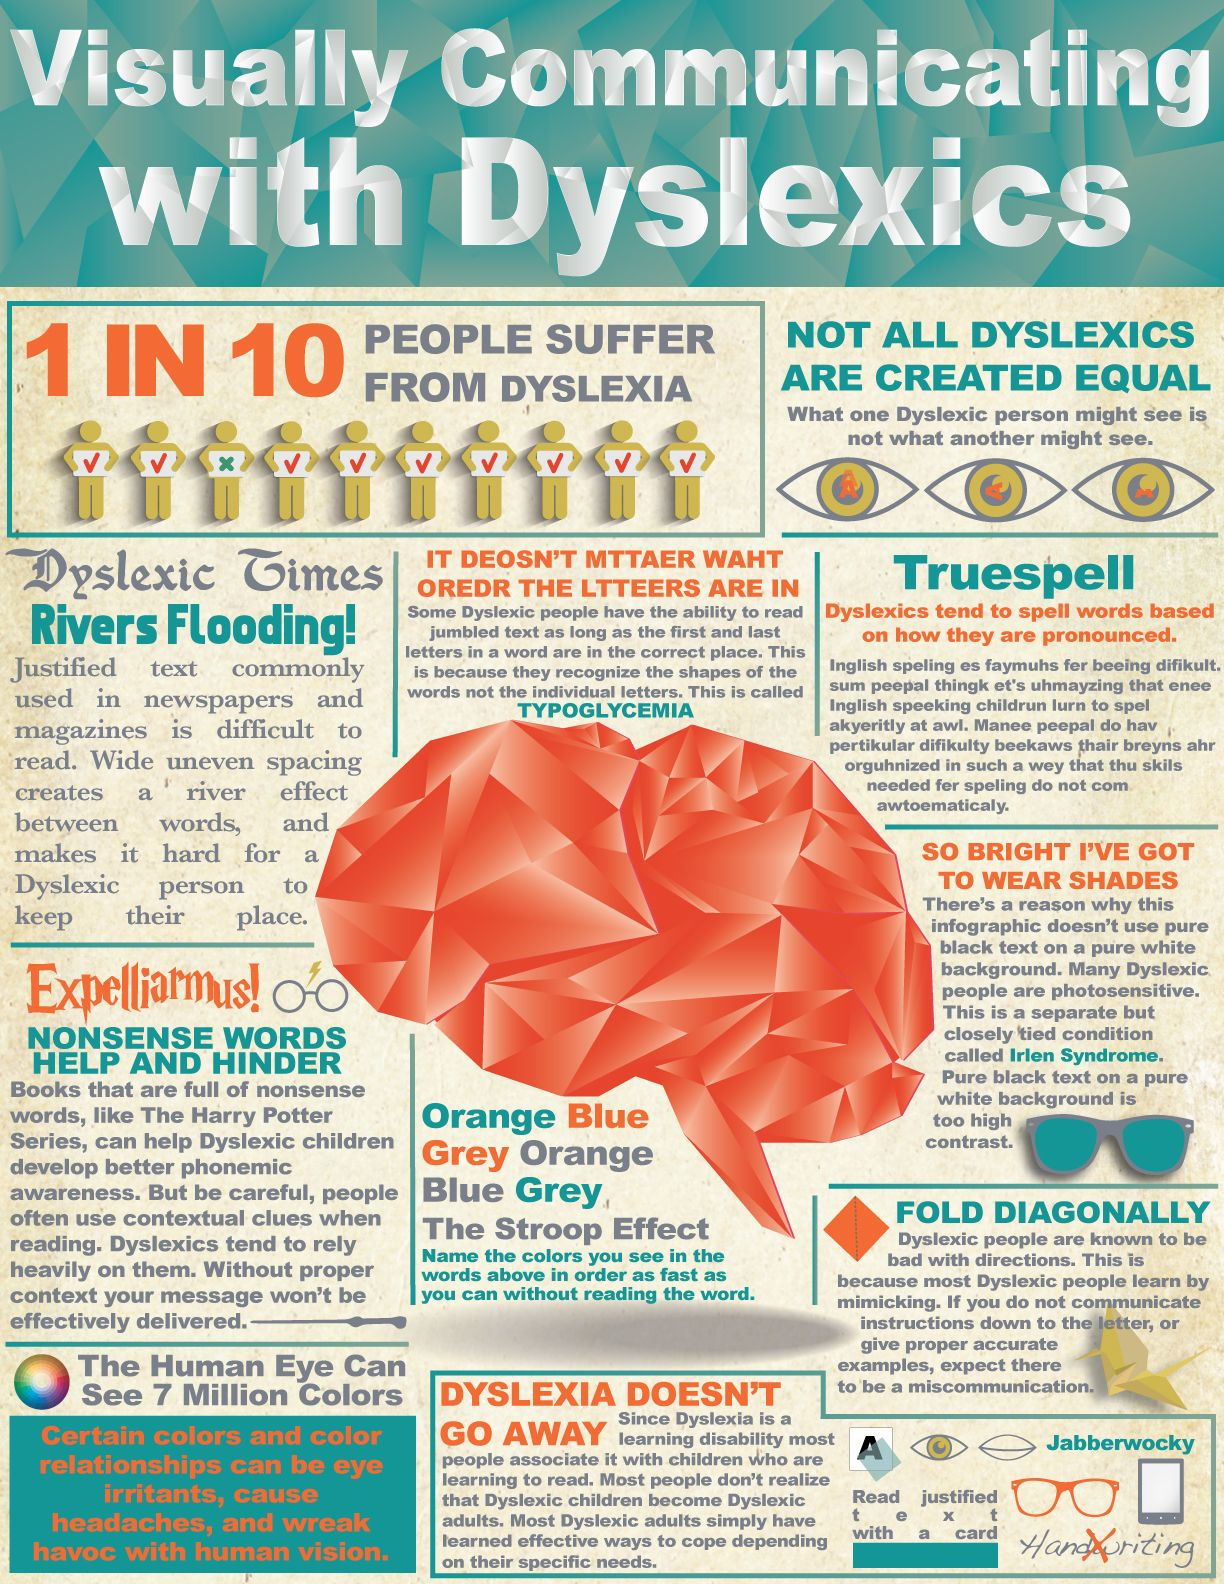 Visually Communicating With Dyslexics Infographic By